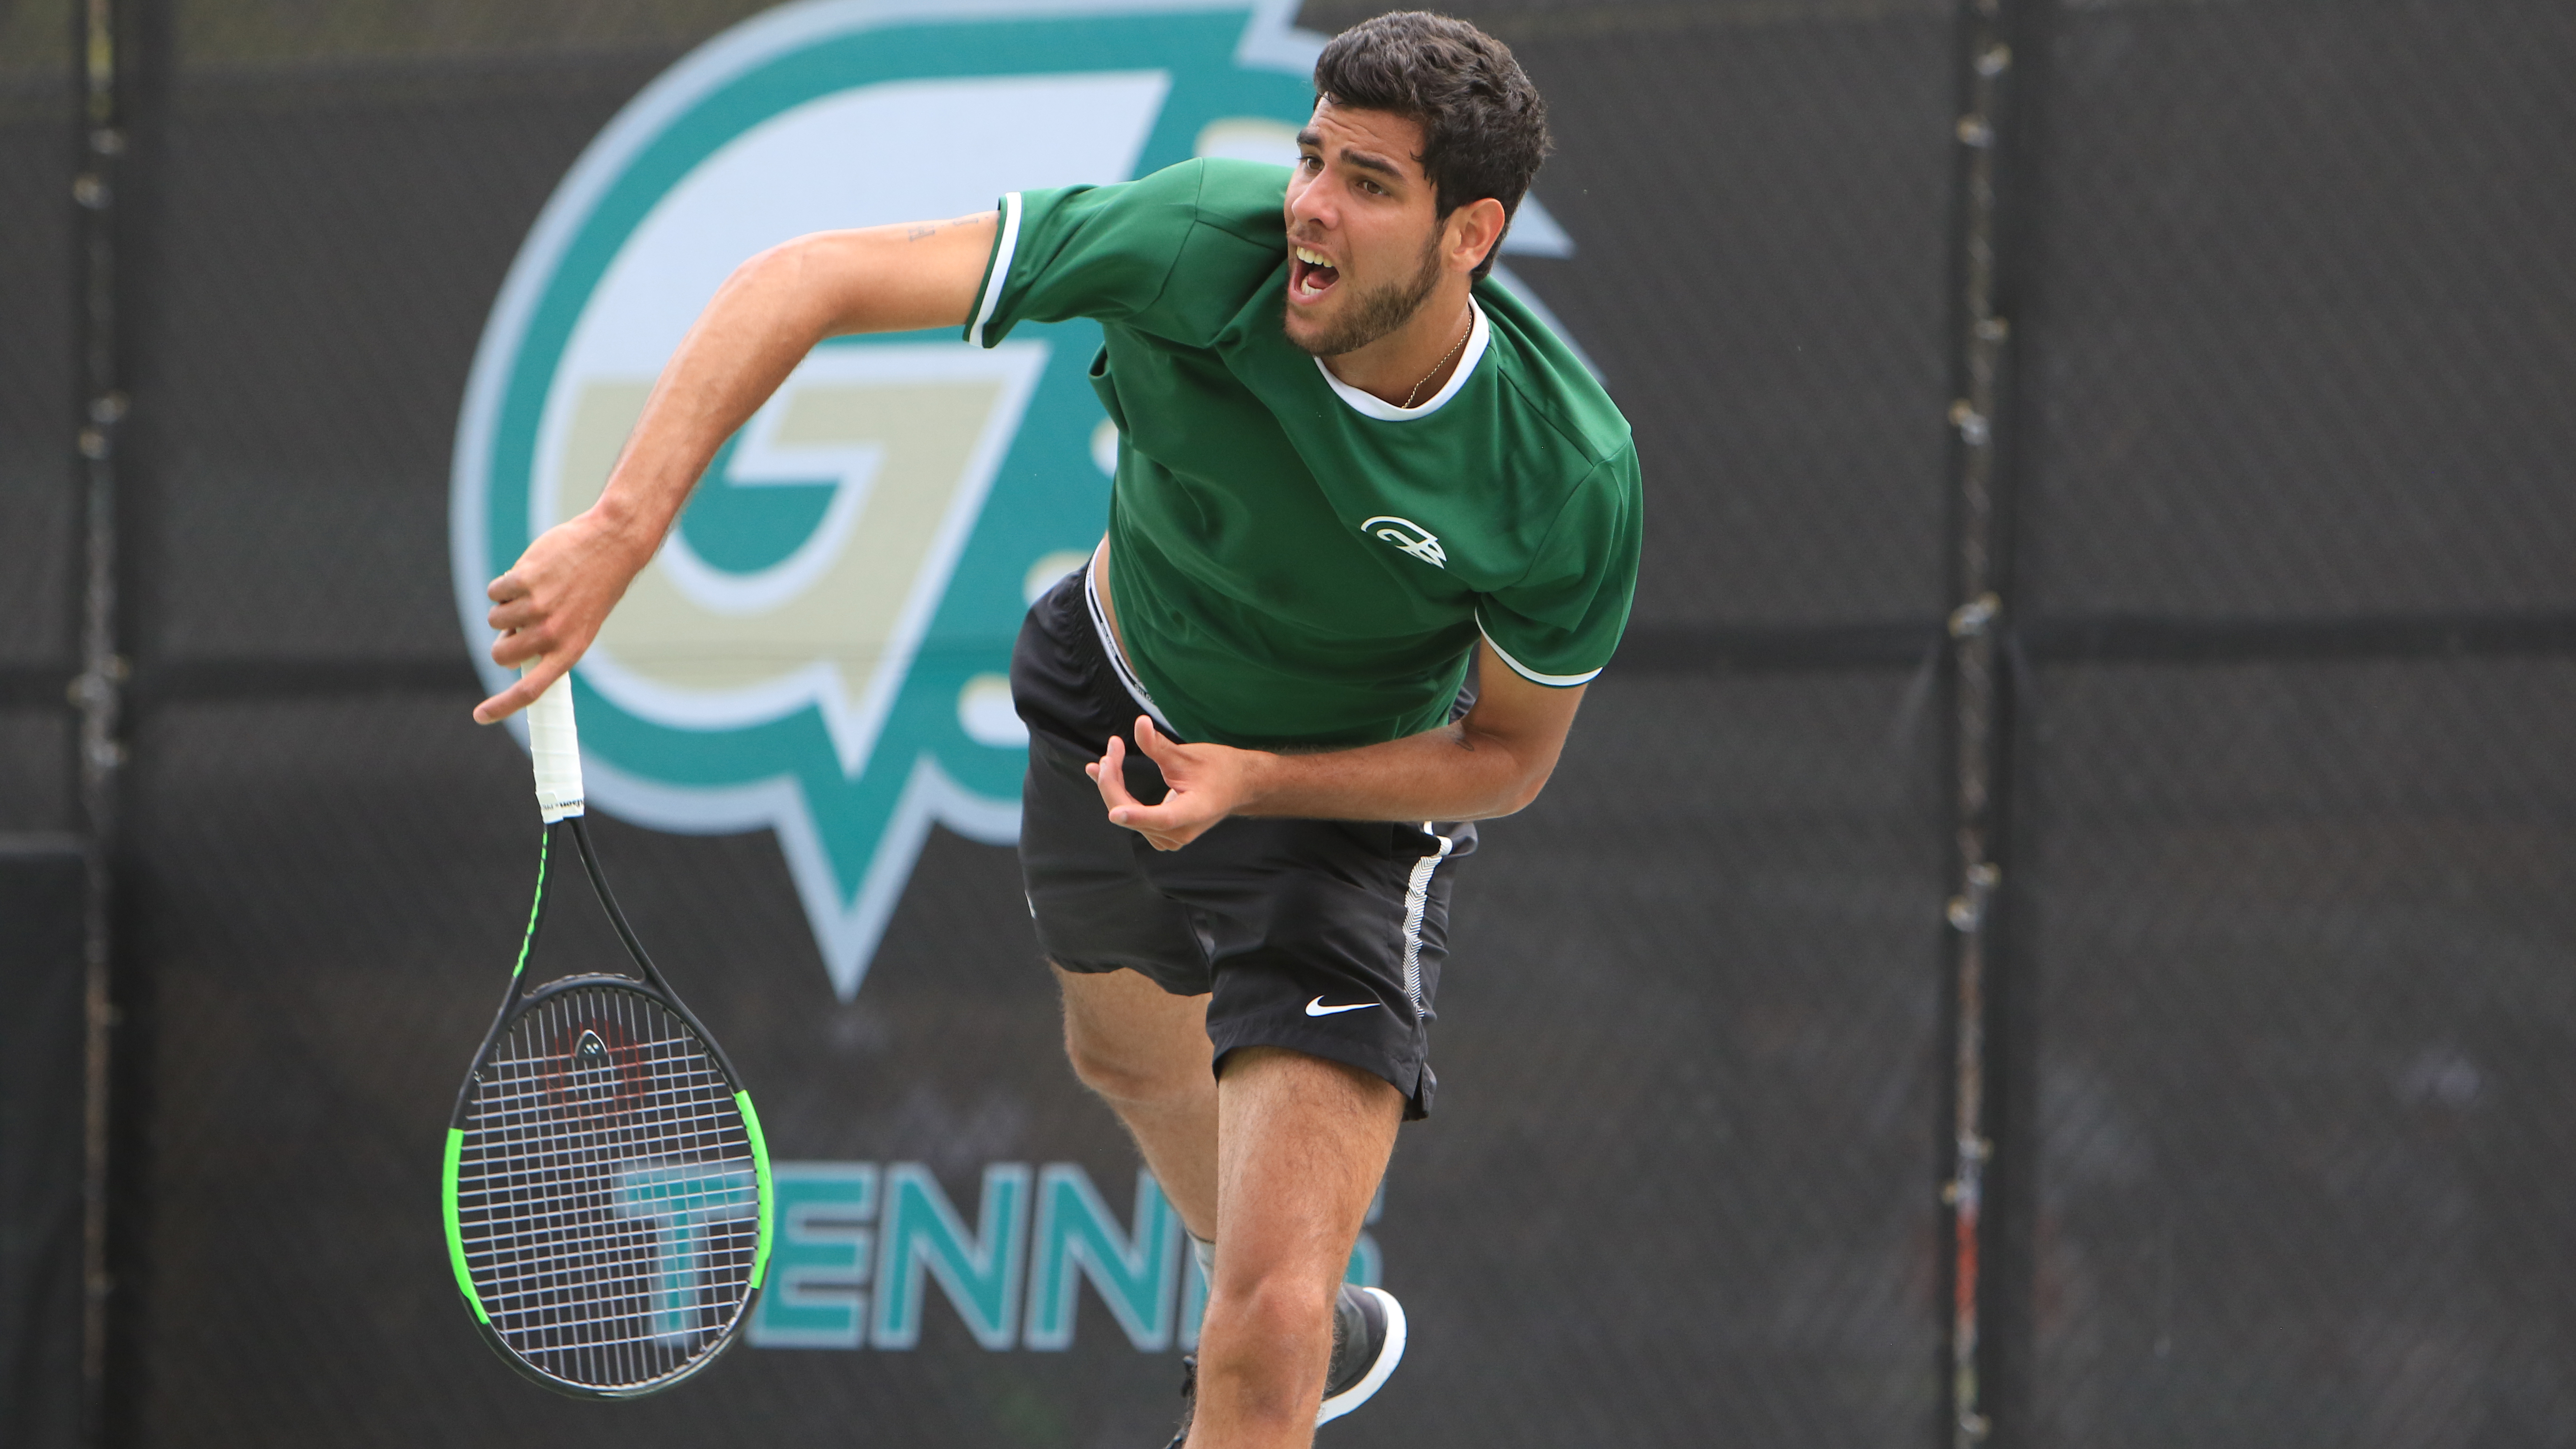 2018 NAIA Men's Tennis Coaches' Top 25 Poll No. 4 ? (March. 27)